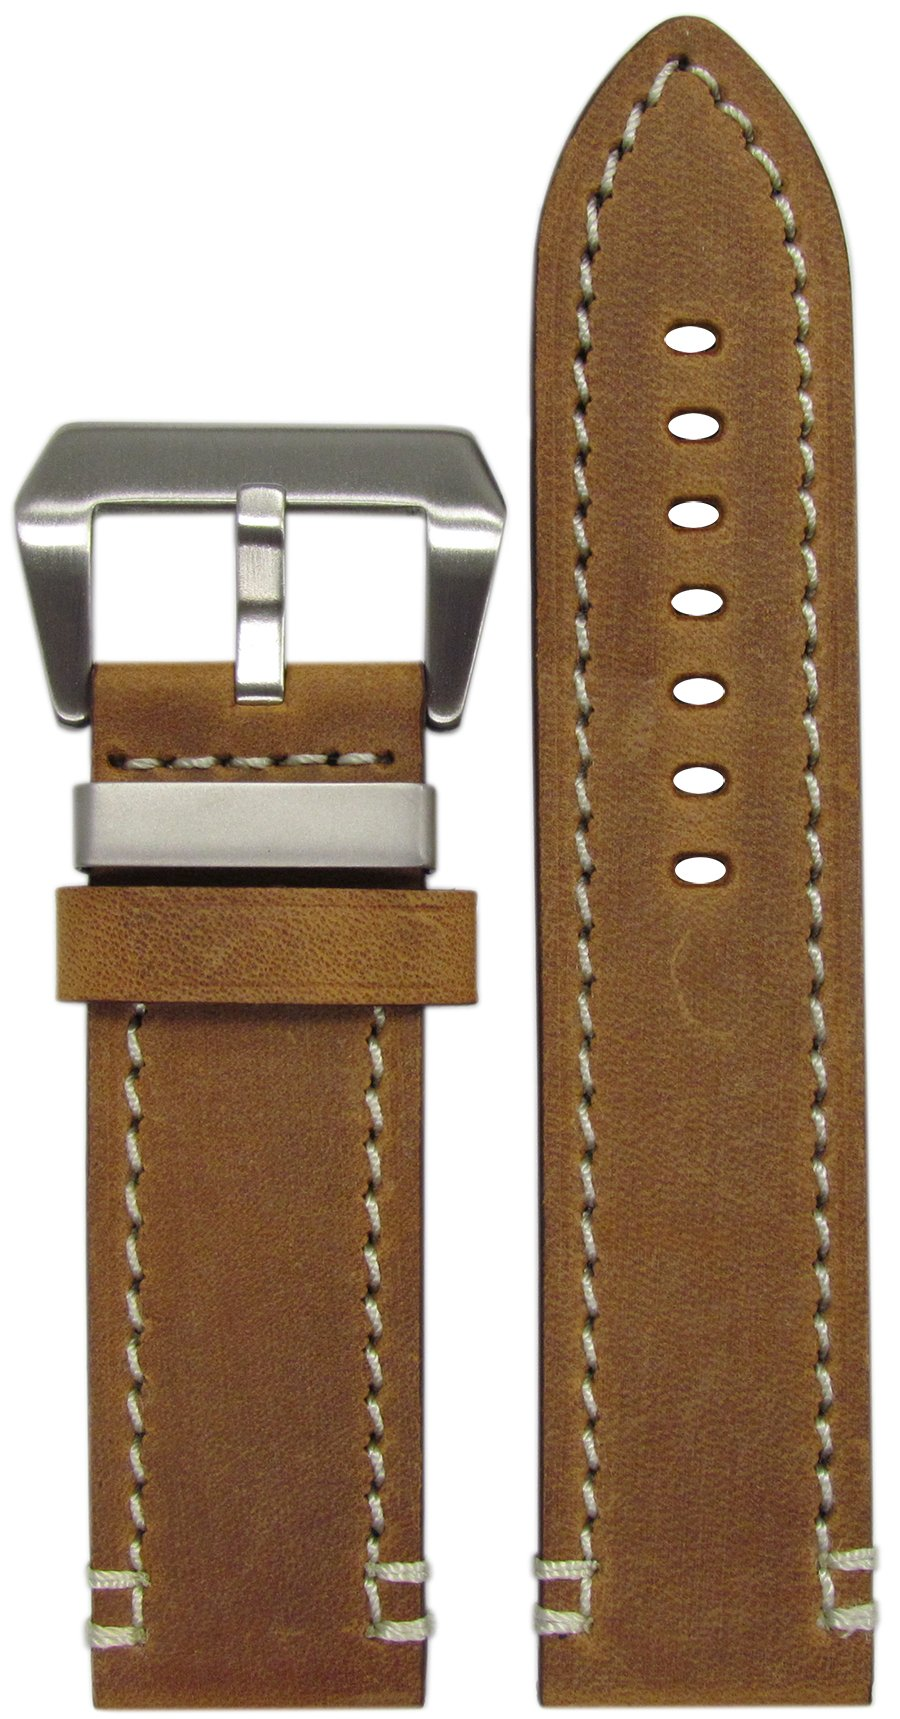 24mm XL Panatime 'Ranger' Brushed Brown Vintage Genuine Leather Watch Band with White Stitching 24/24 135/85